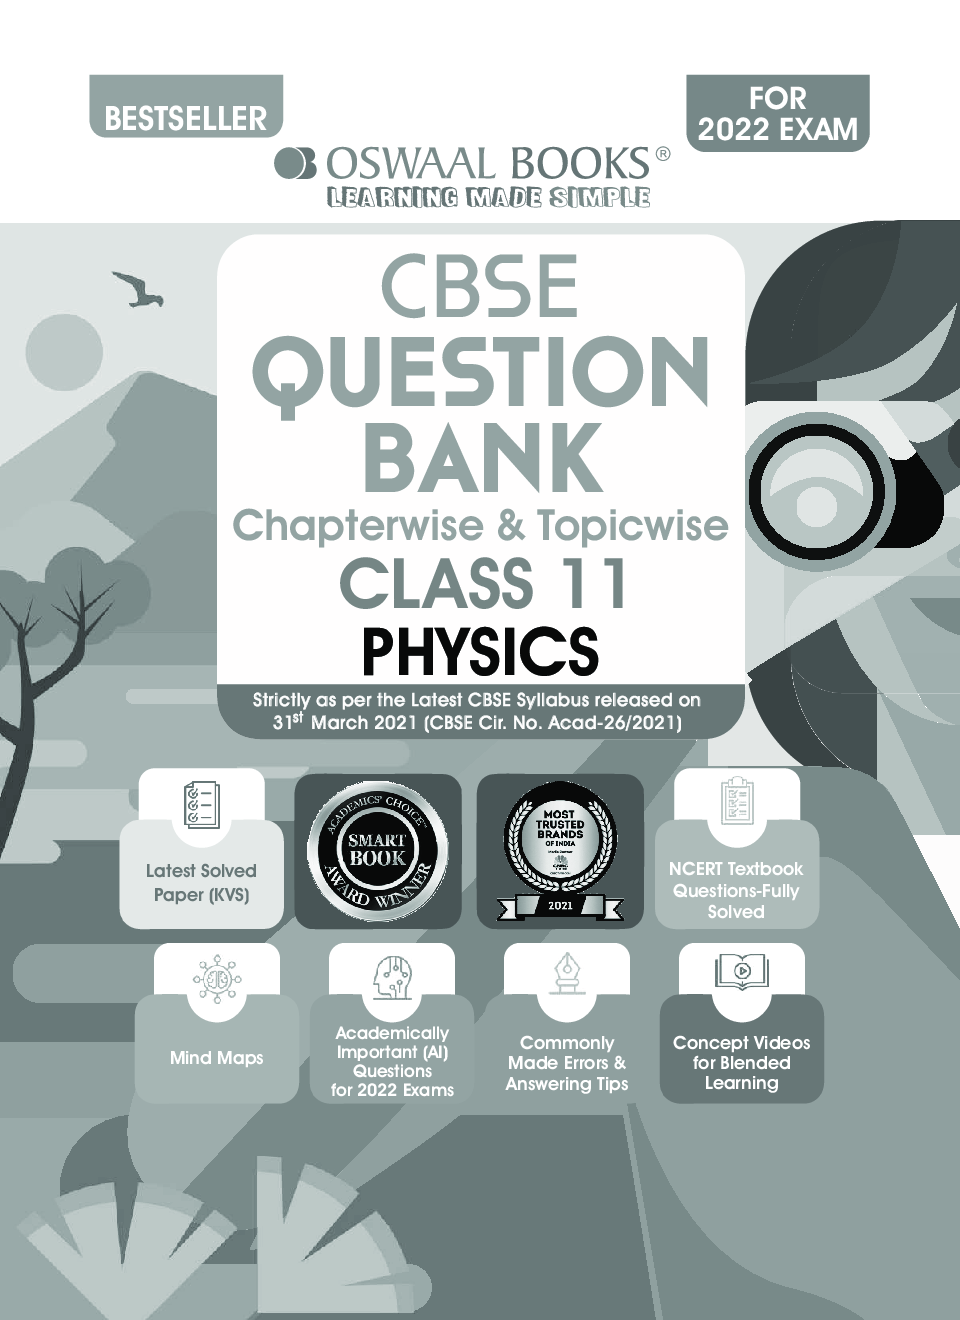 Oswaal CBSE Question Bank Class 11 Physics Book Chapterwise & Topicwise (For 2022 Exam) - Page 2